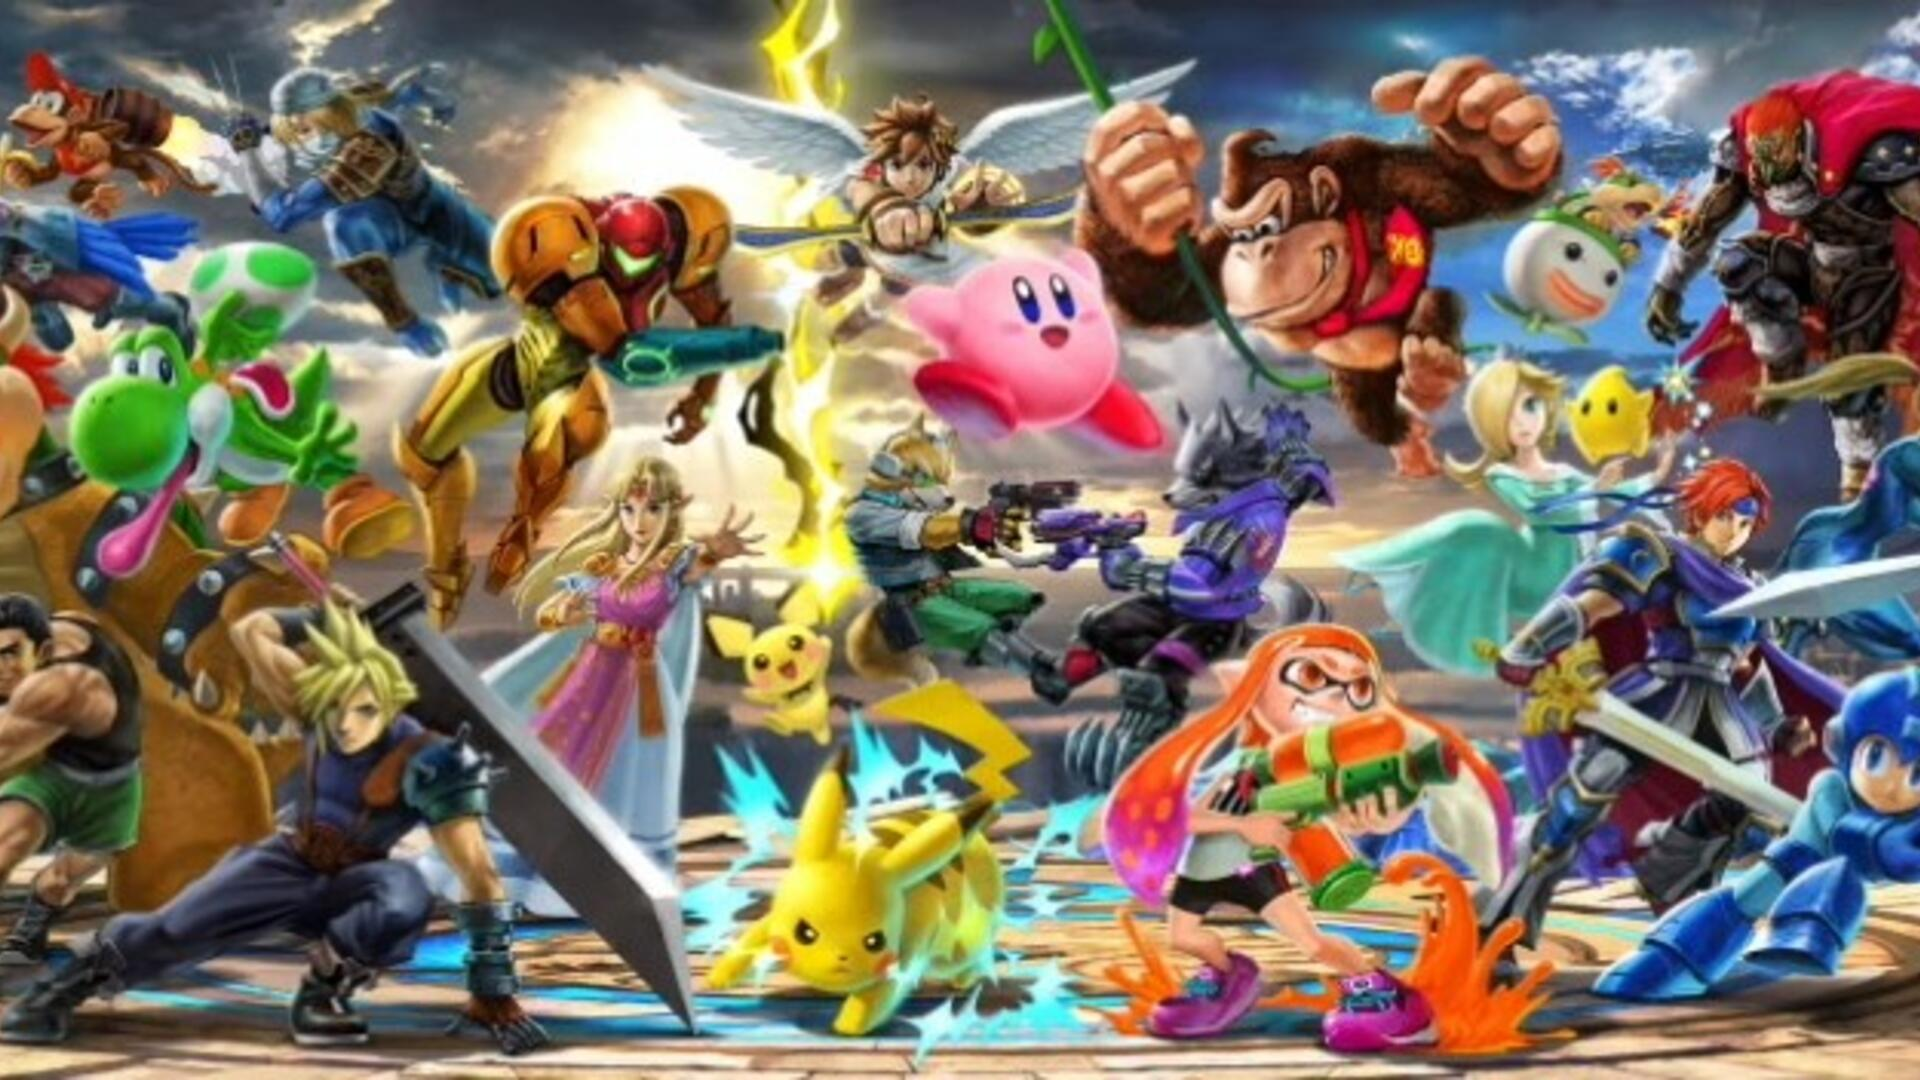 Smash Bros. Ultimate Leaks Looking Less Real All the Time as Company Associated With Leaks Releases Strong Denial